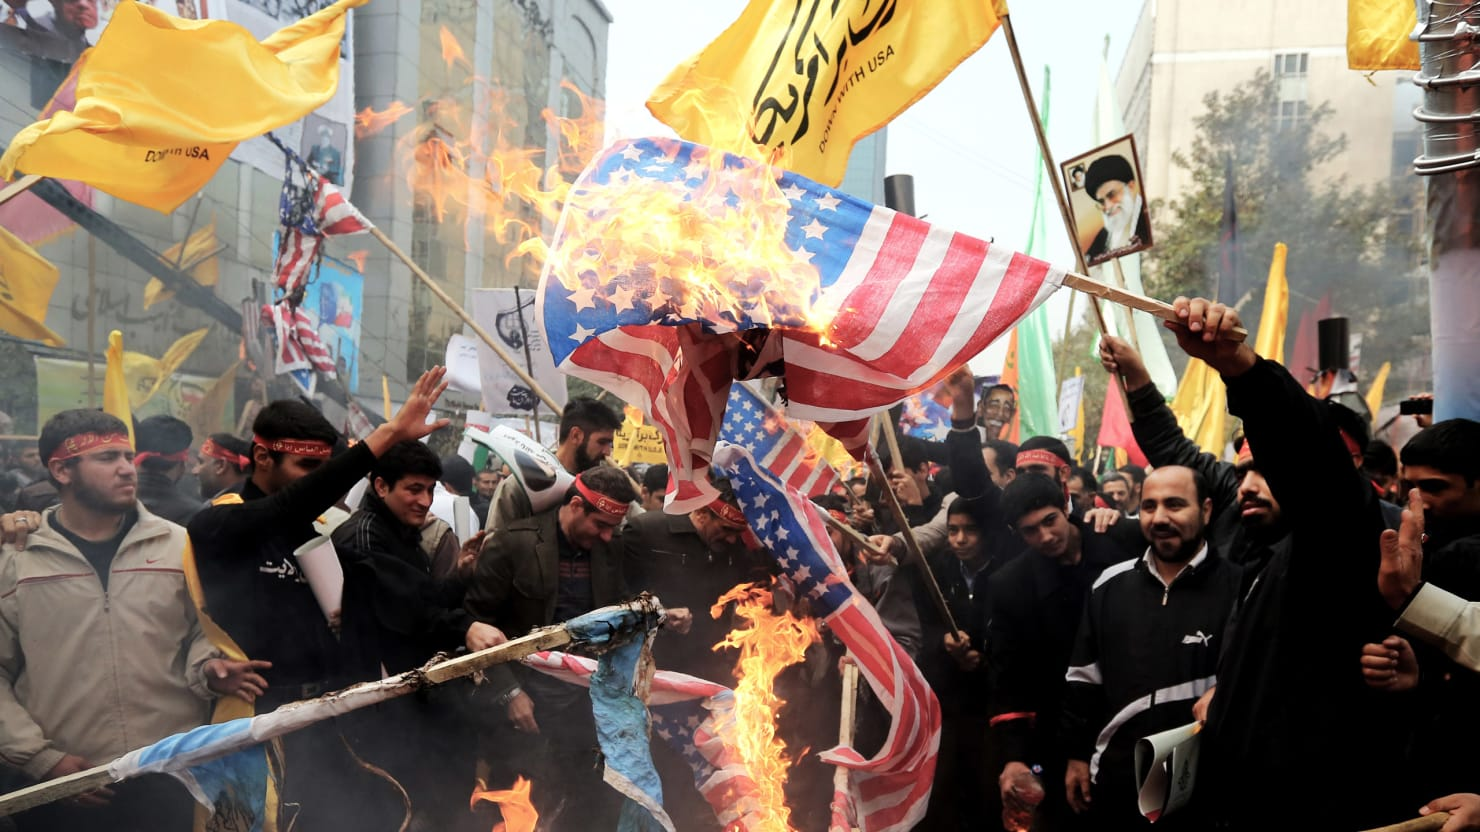 131104-iran-protest-cheat_wiicxp.jpg